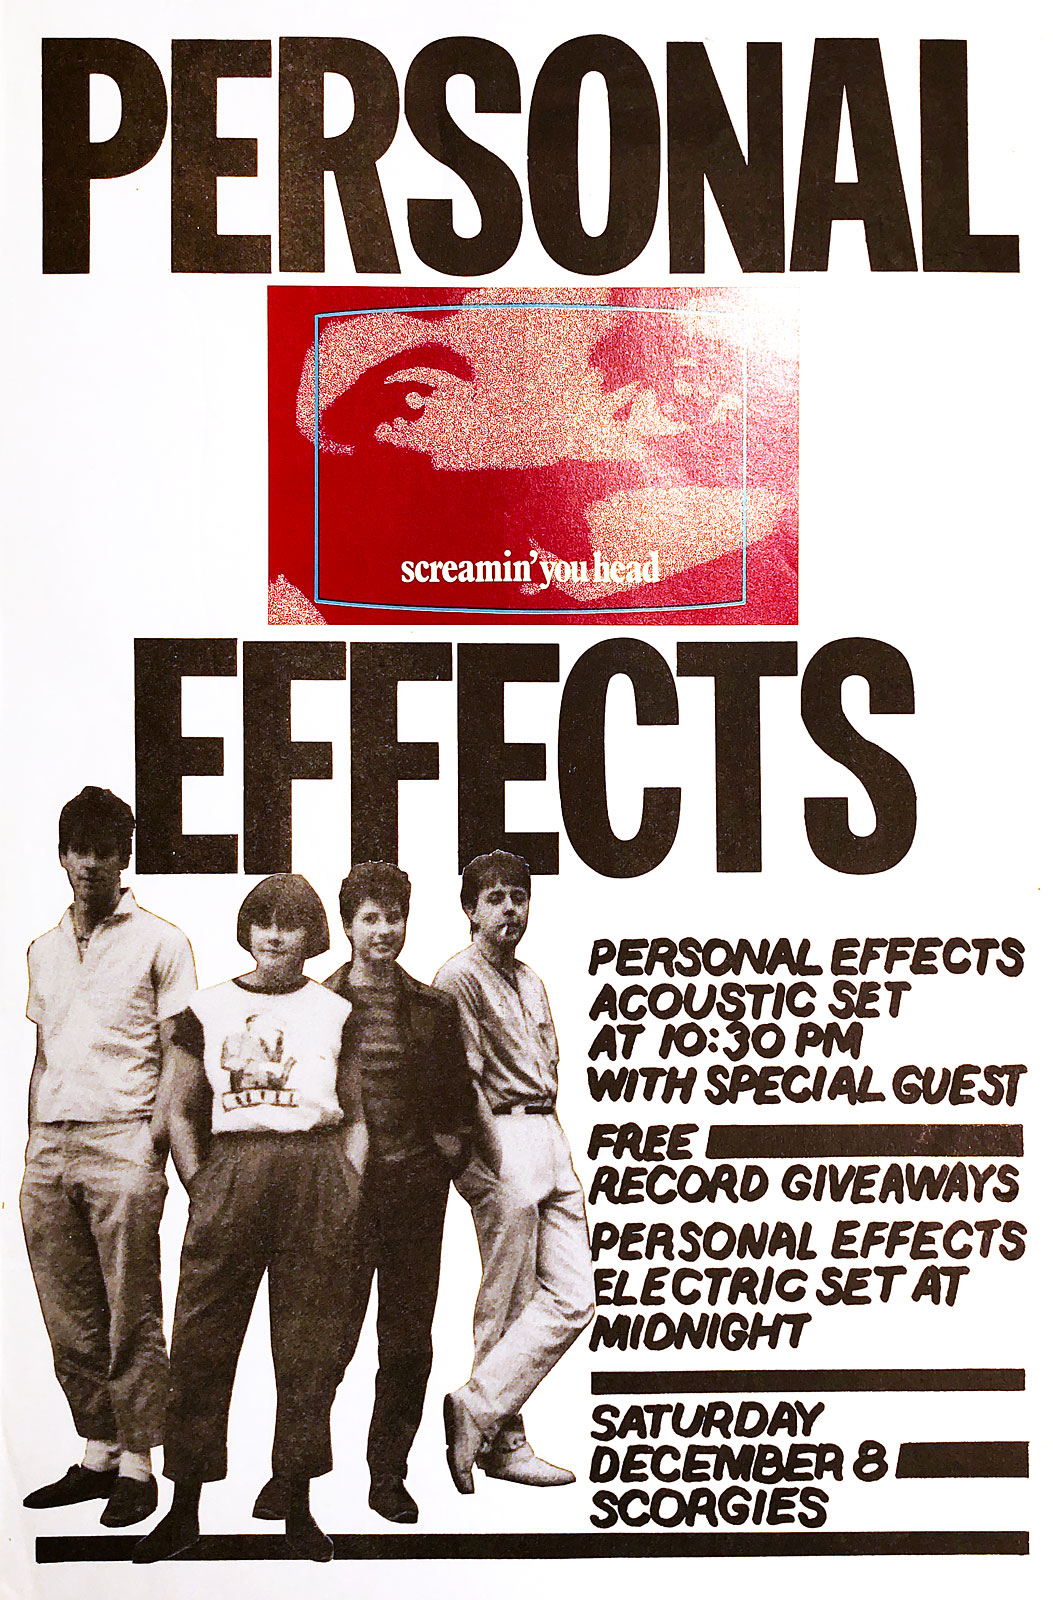 Poster for Personal Effects at Scorgie's in Rochester, New York on 12.08.1984. The band played a first set acoustically.